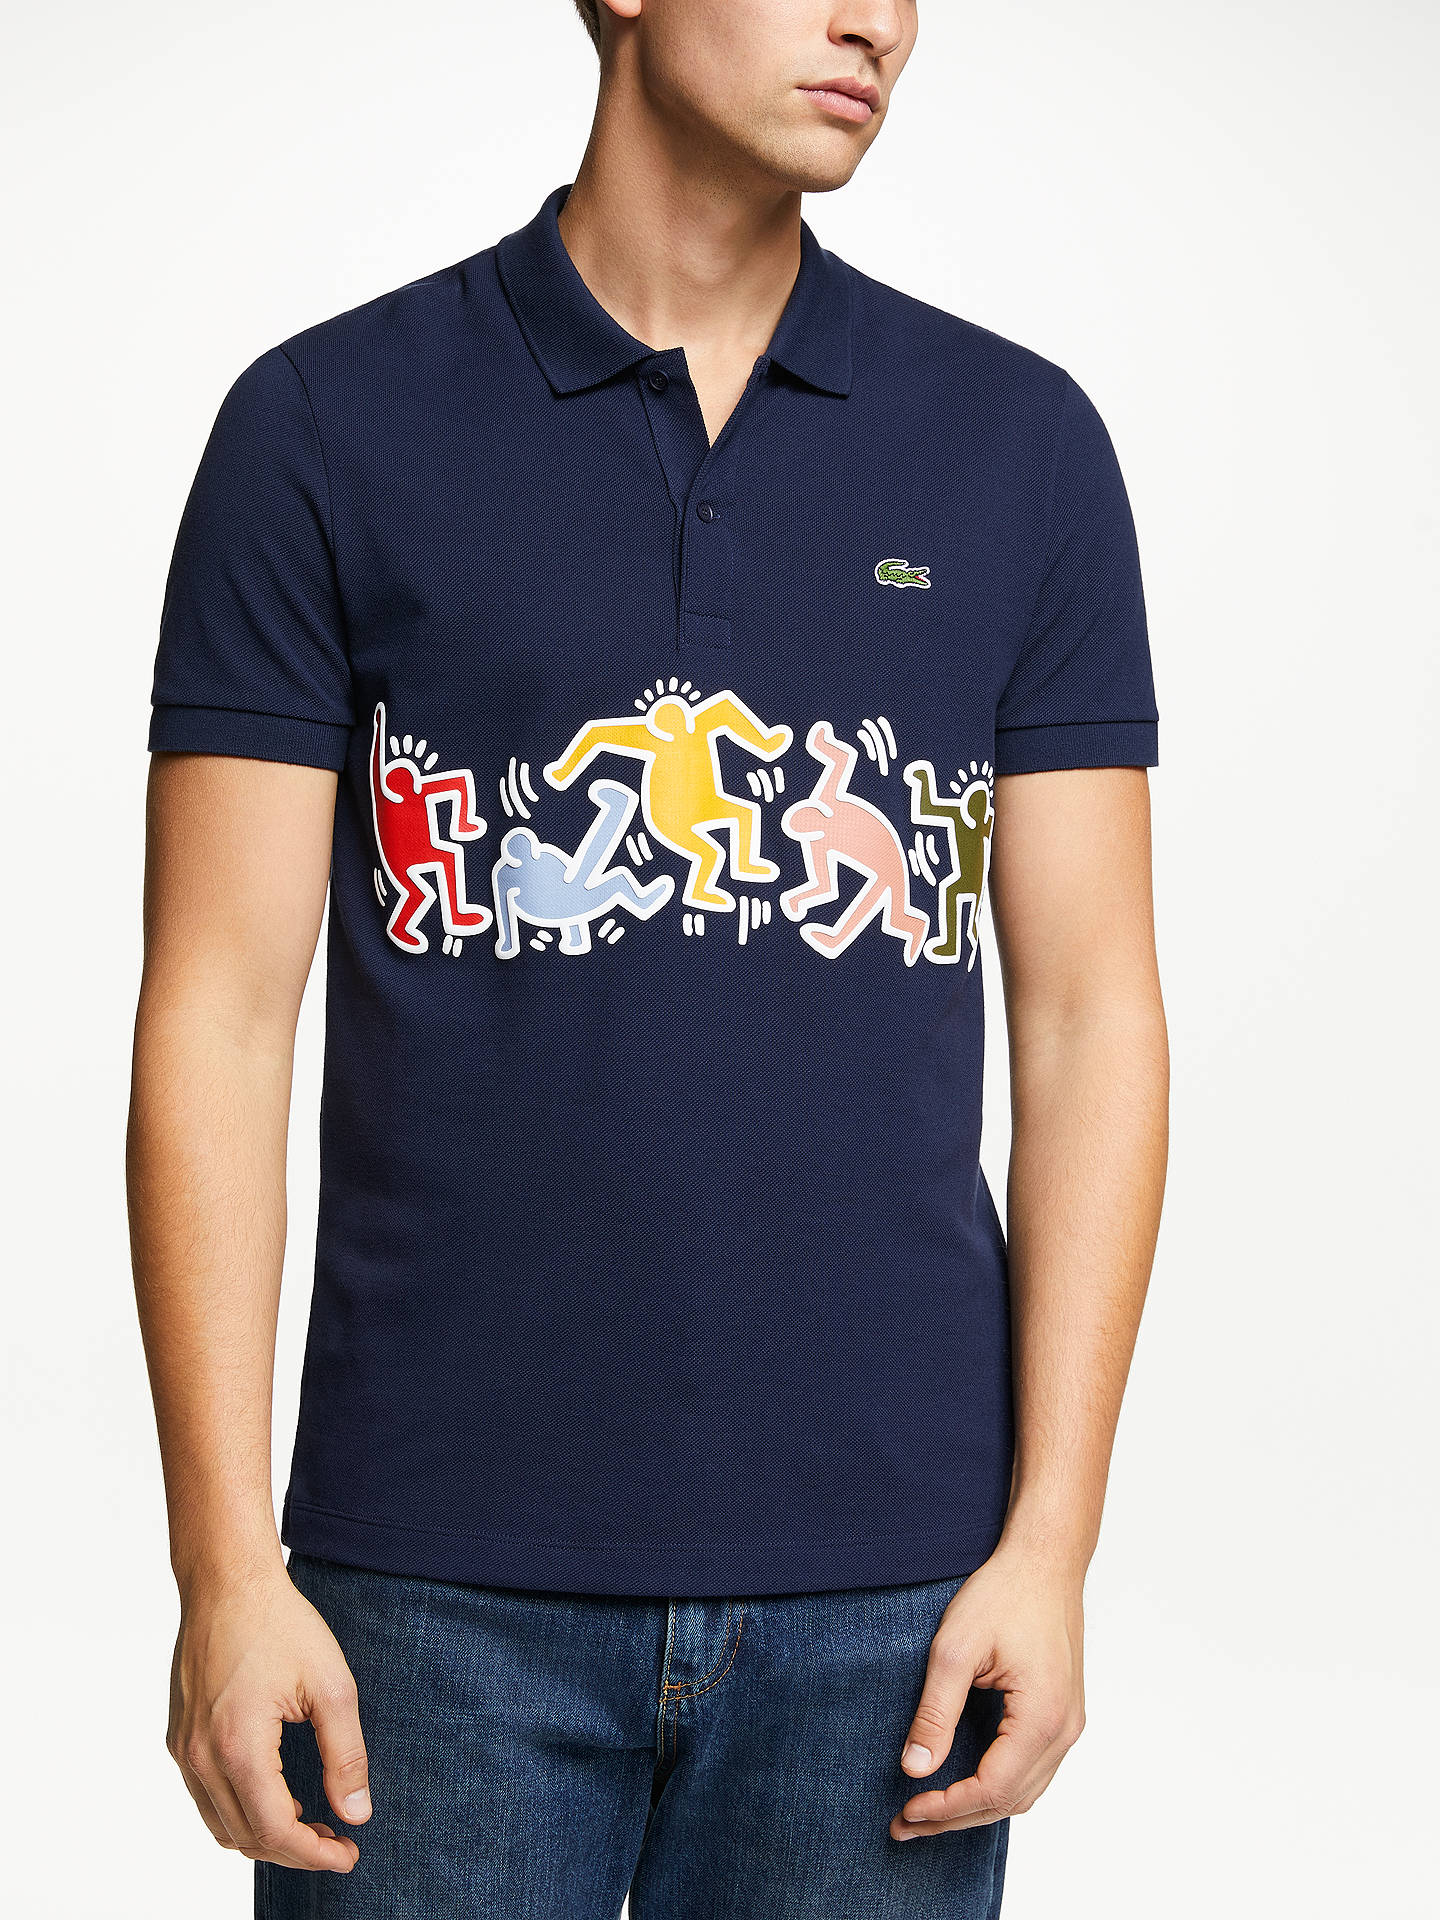 b785407e Lacoste x Keith Haring Printed Band Polo Shirt at John Lewis & Partners